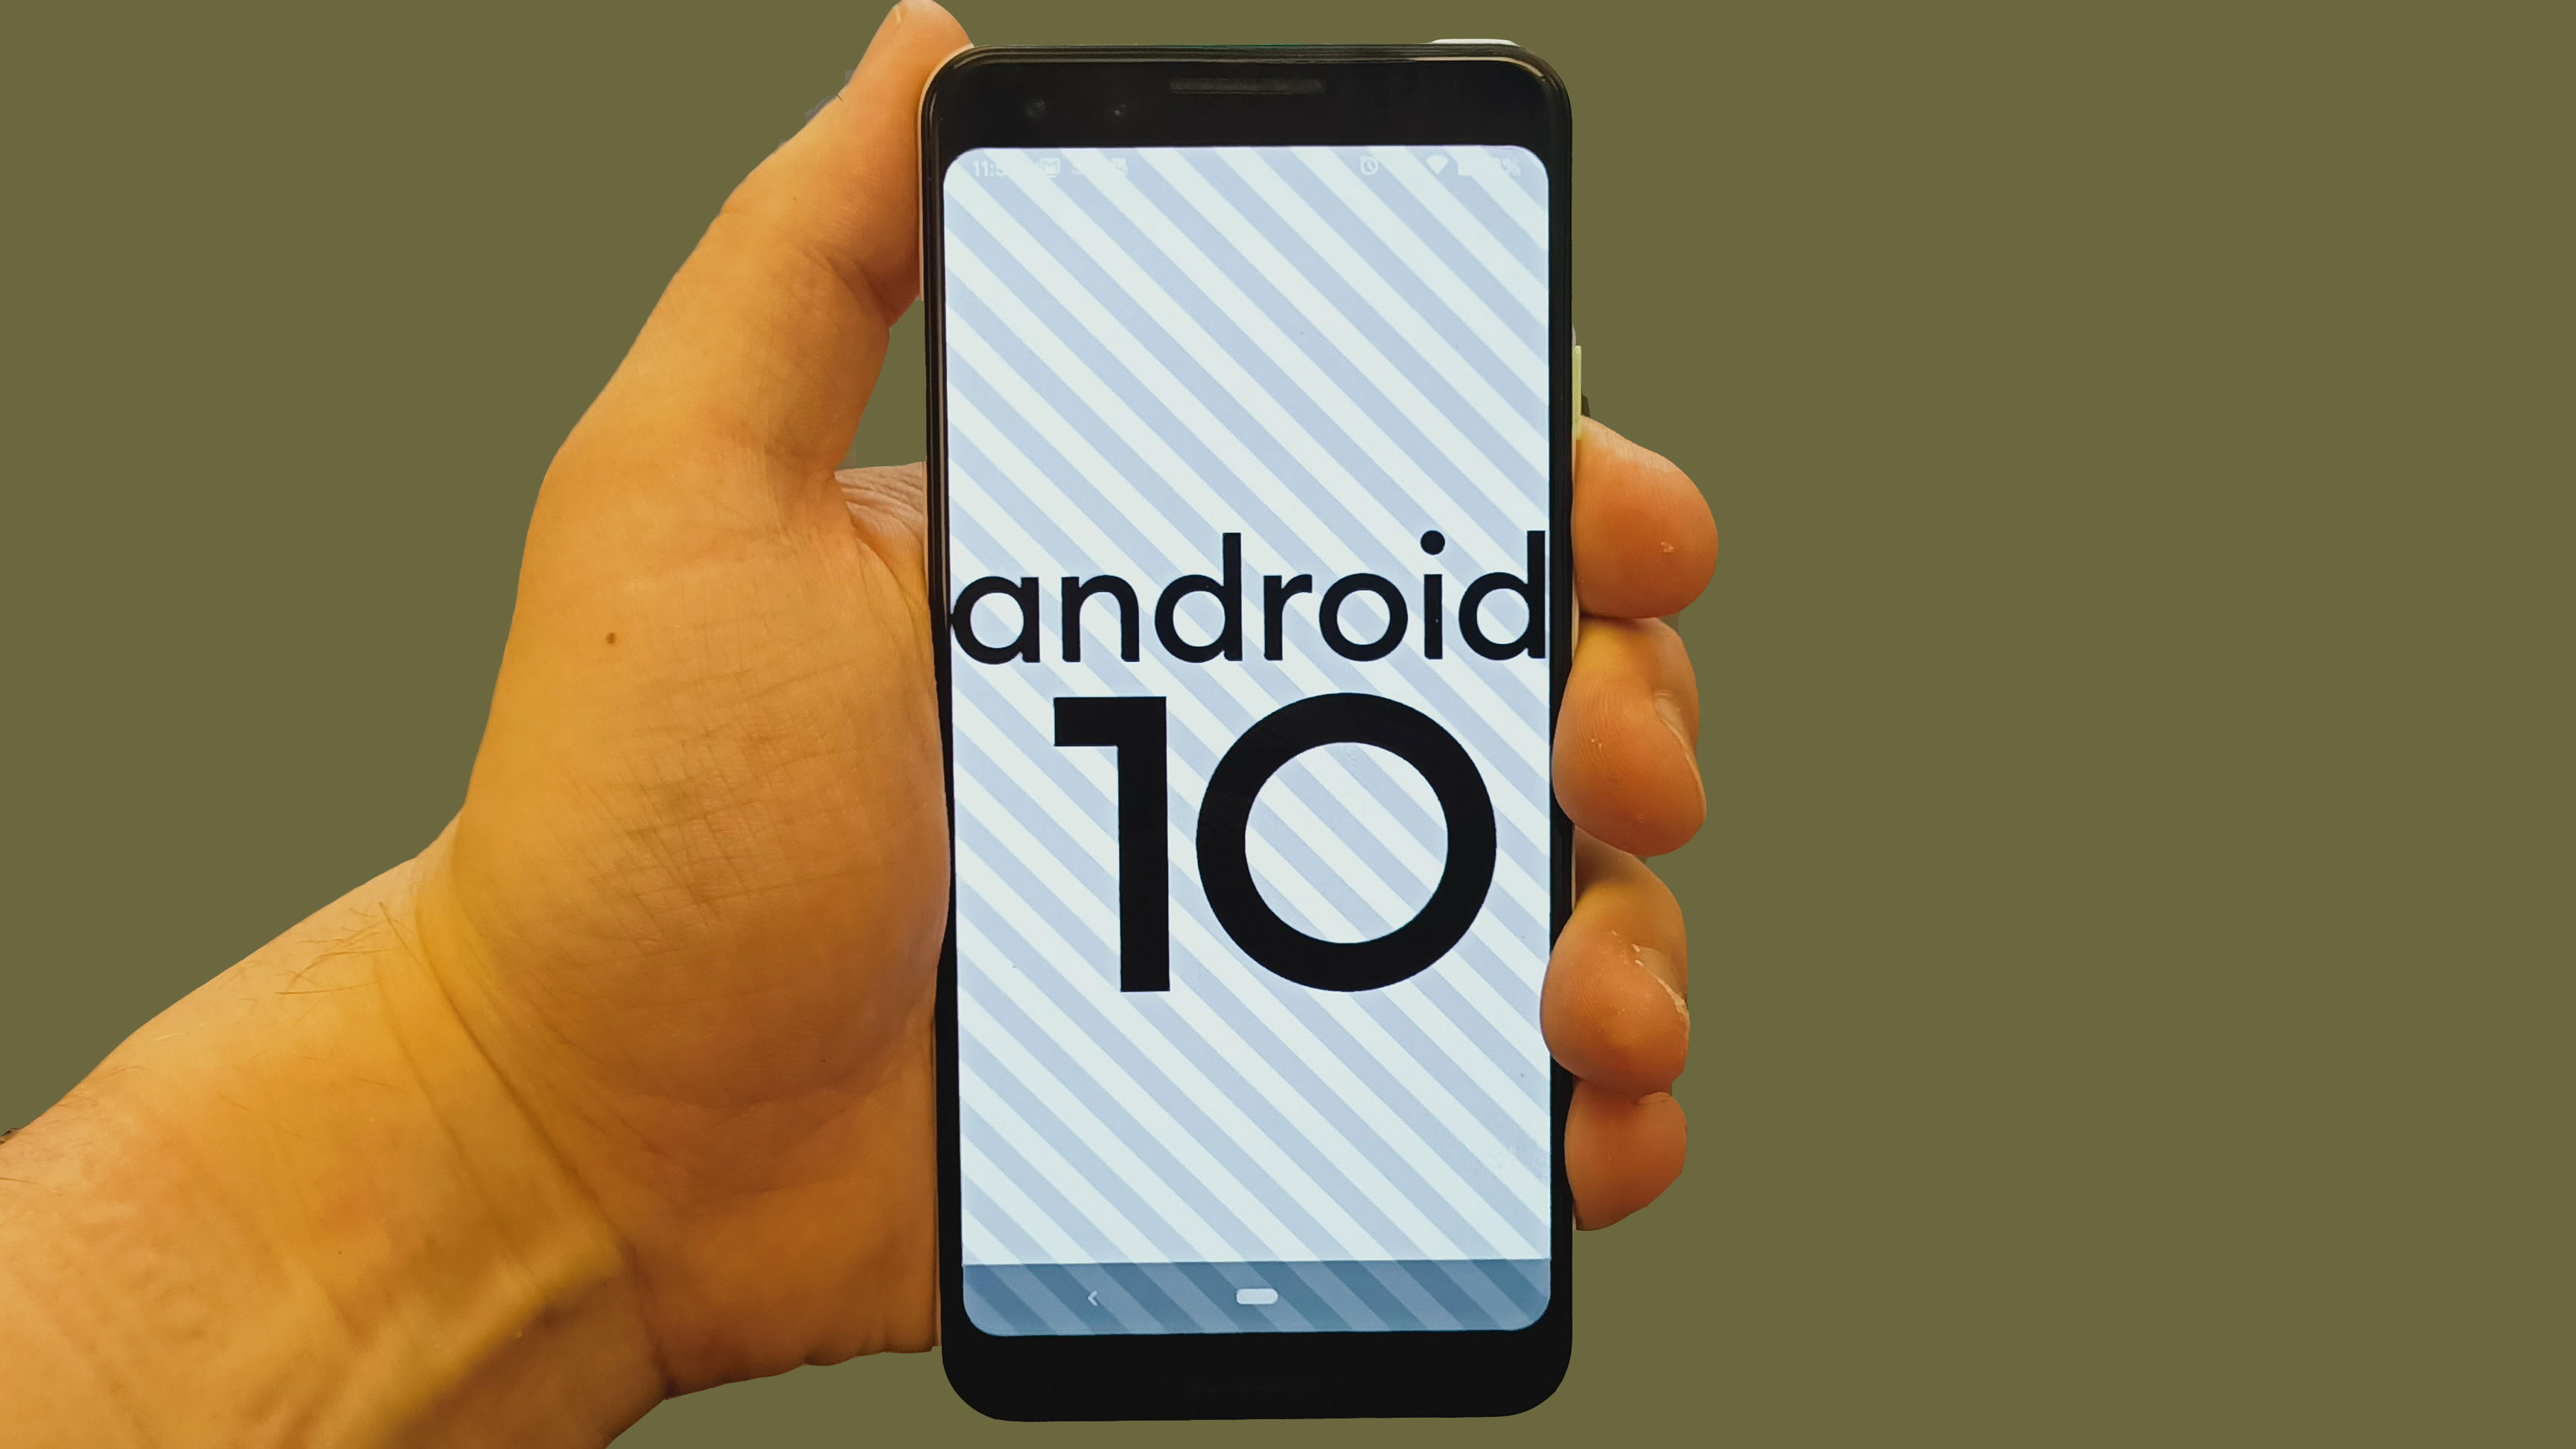 How to download Android 10 to your phone | TechRadar